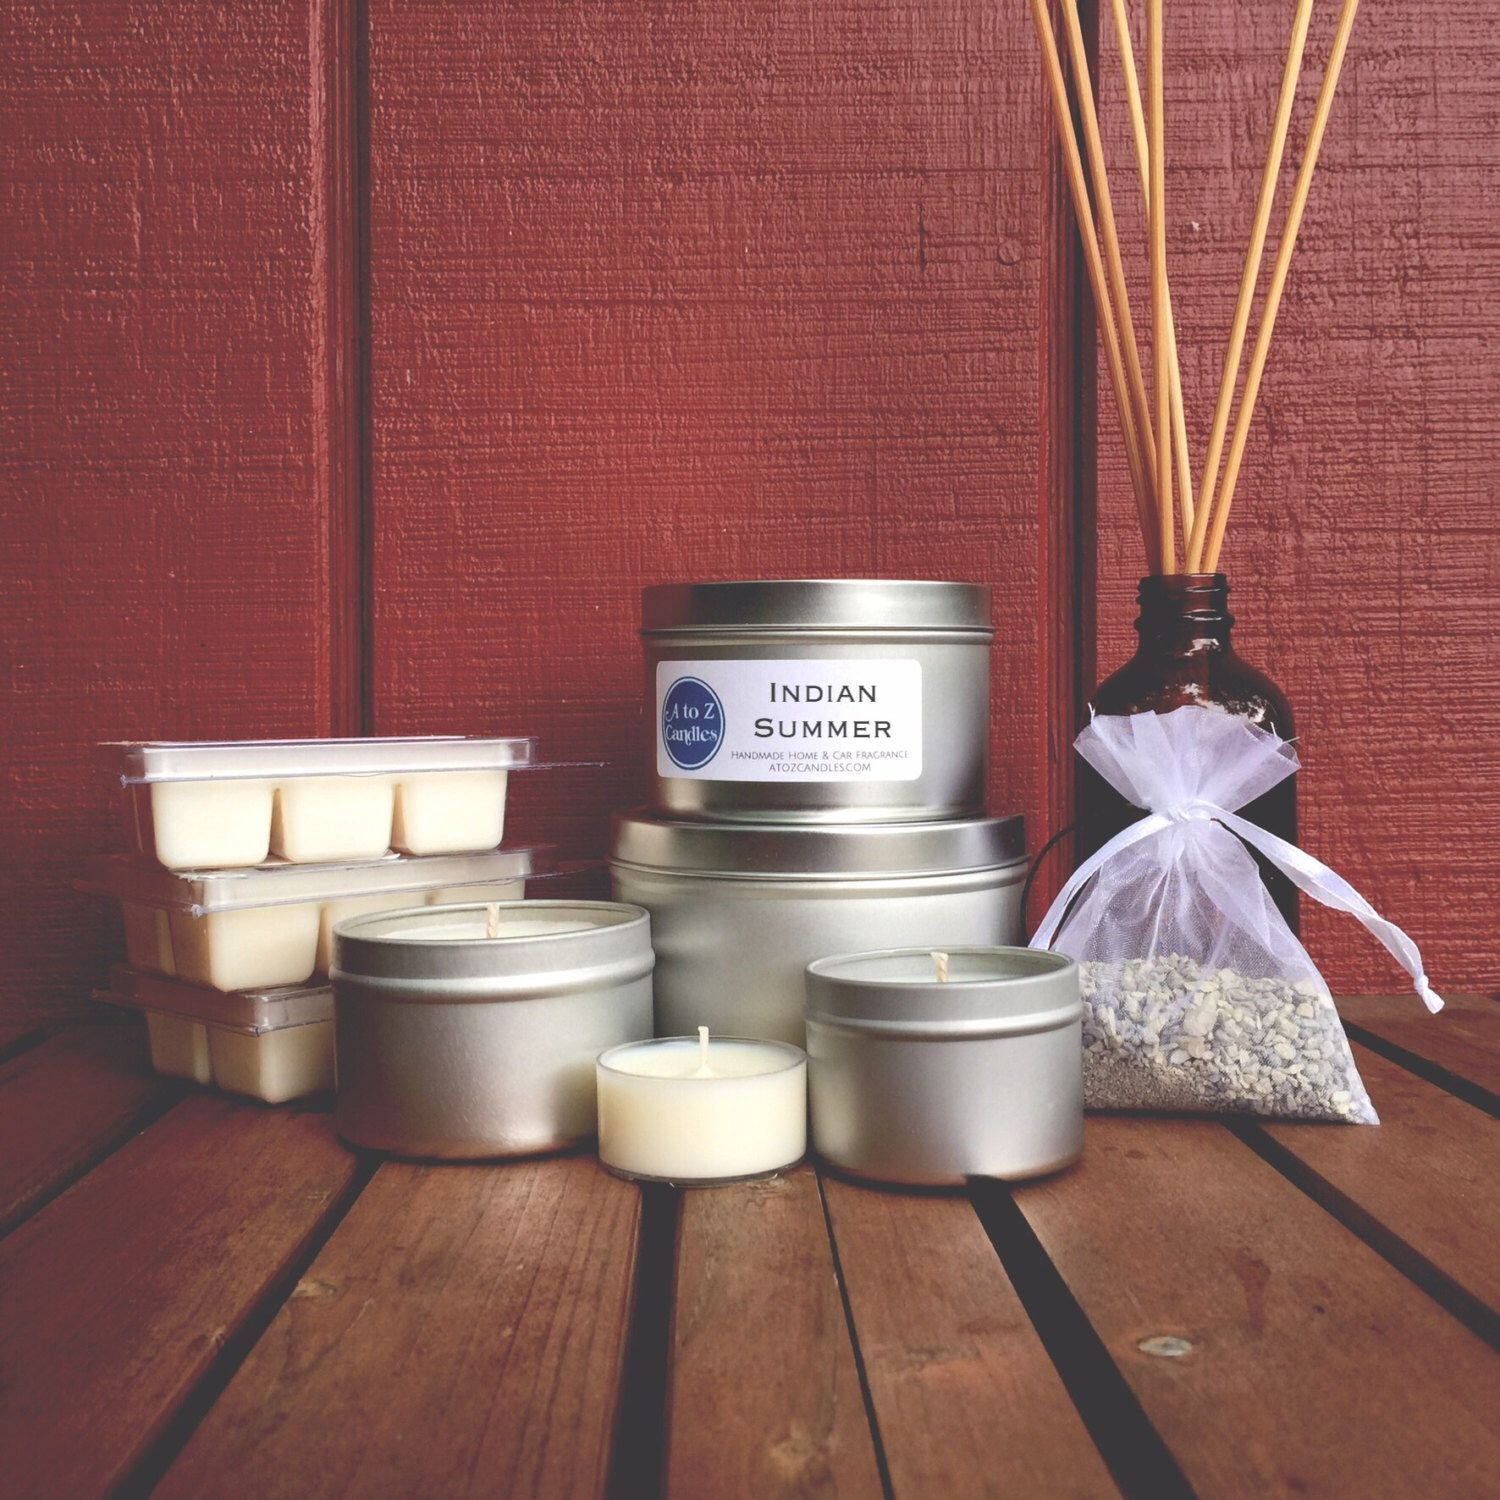 INDIAN SUMMER, Autumn Candle, Soy Candle, Strawberry, Apple, Pear, Basil, Oak, Geranium, Fall Soy Wax Melt, Car Freshener, Reed Diffuser by AtoZCandles on Etsy https://www.etsy.com/listing/452240608/indian-summer-autumn-candle-soy-candle